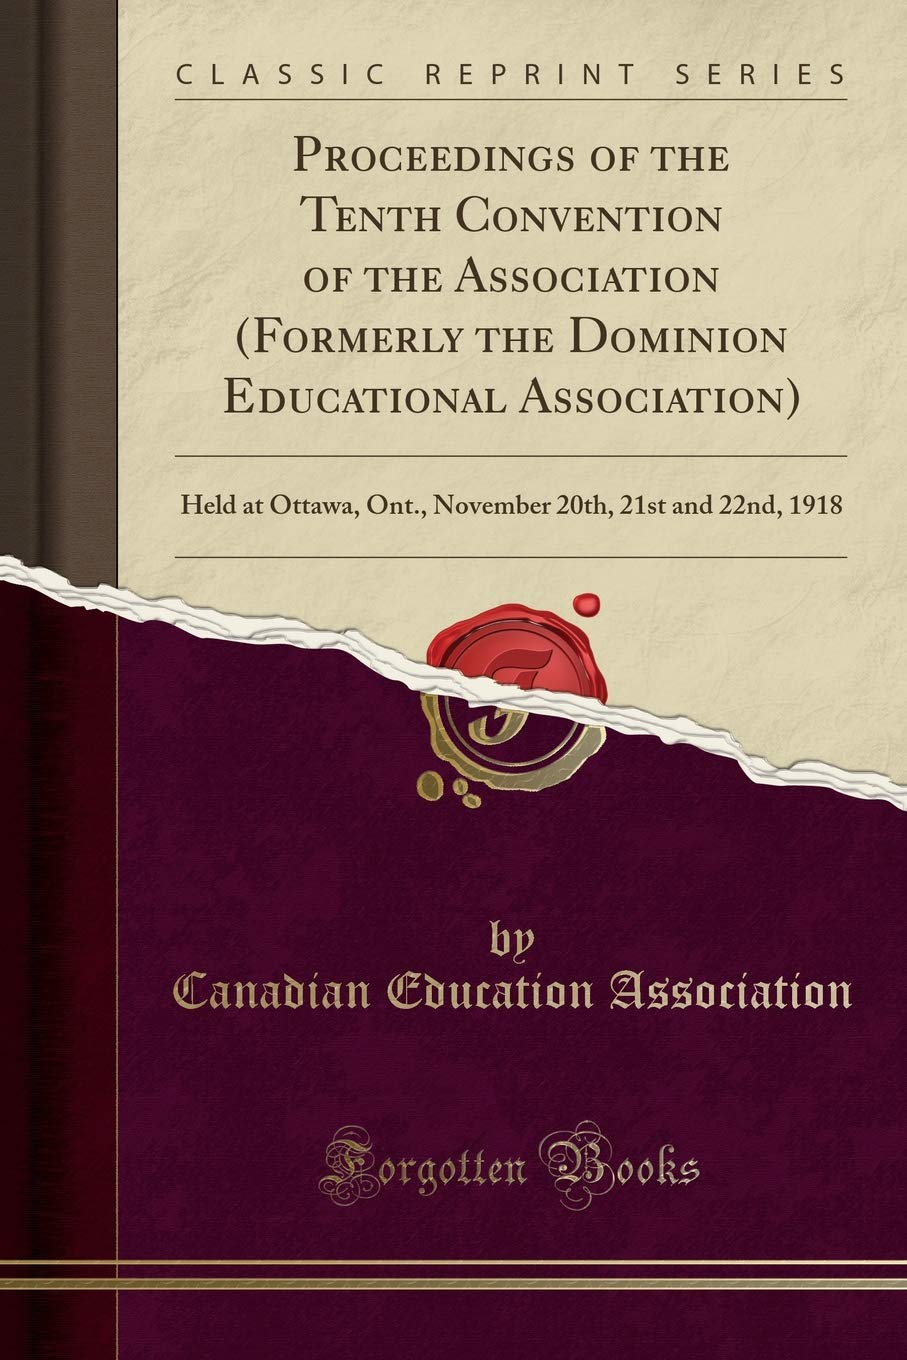 Proceedings of the Tenth Convention of the Association (Formerly the Dominion Educational Association): Held at Ottawa, Ont., November 20th, 21st and 22nd, 1918 (Classic Reprint) pdf epub